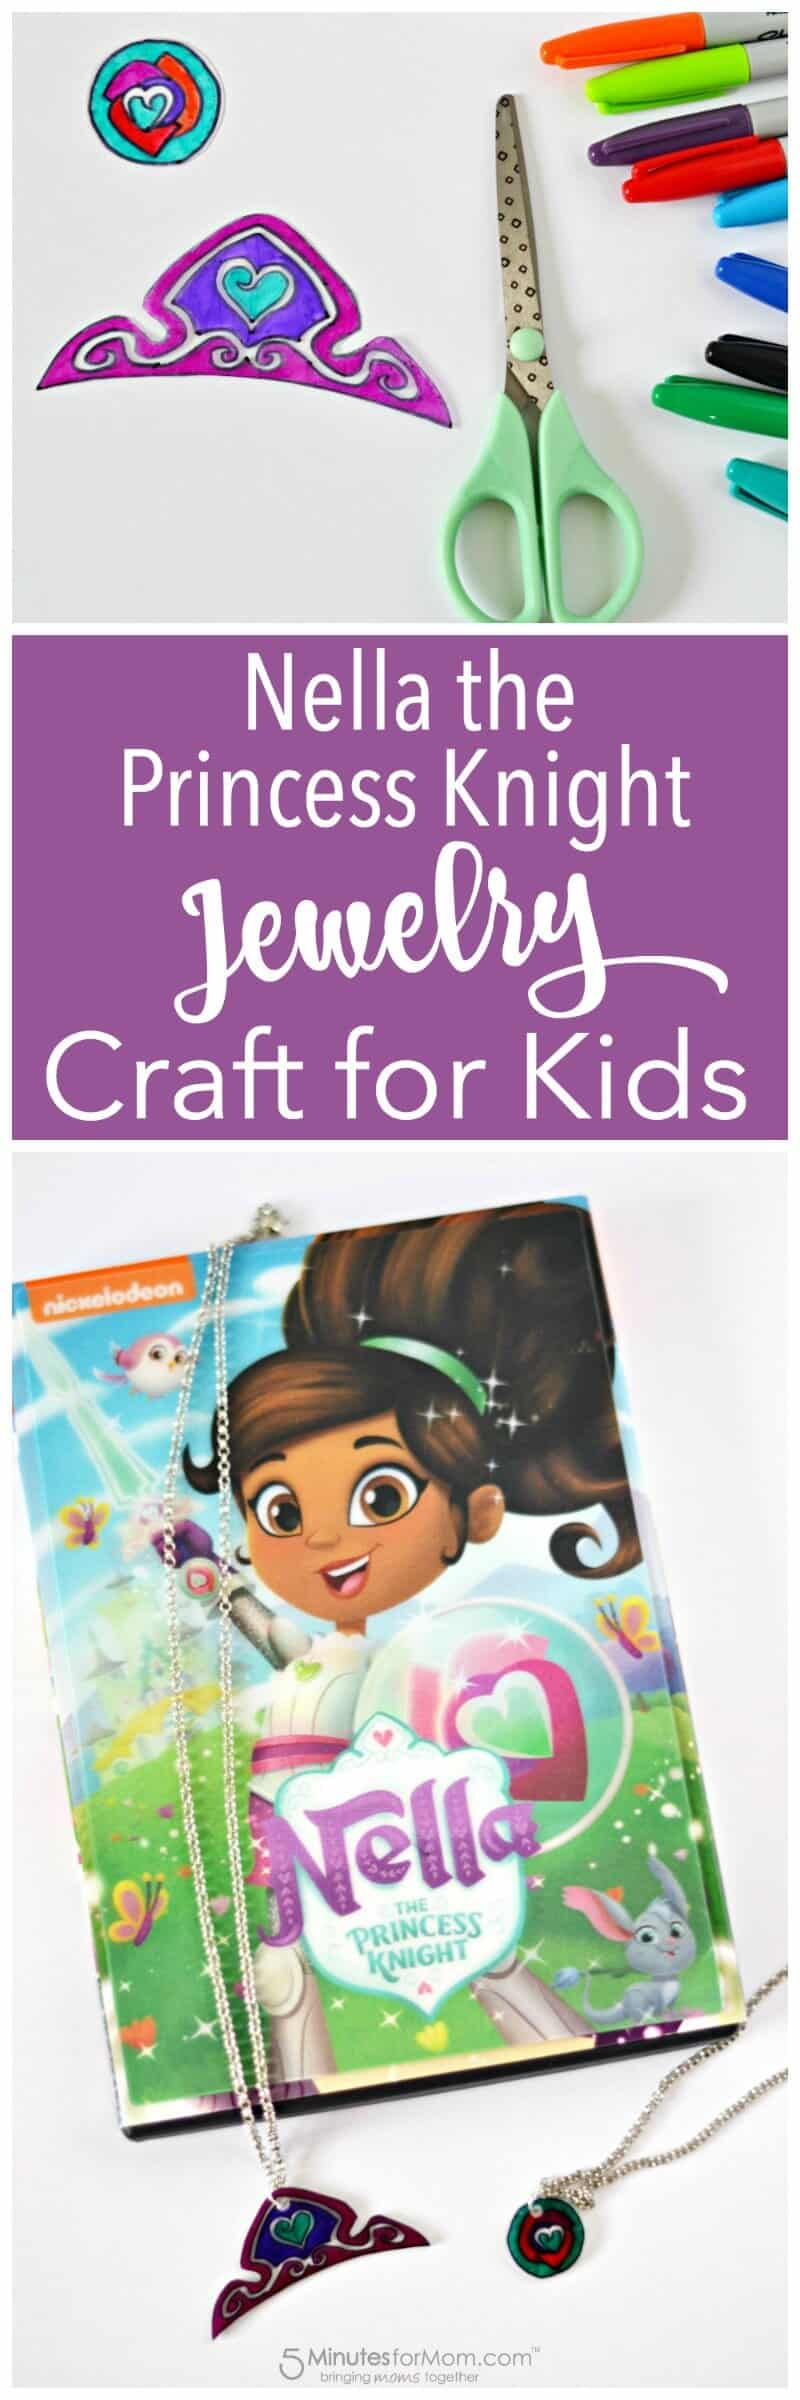 Nella The Princess Knight Craft for Kids